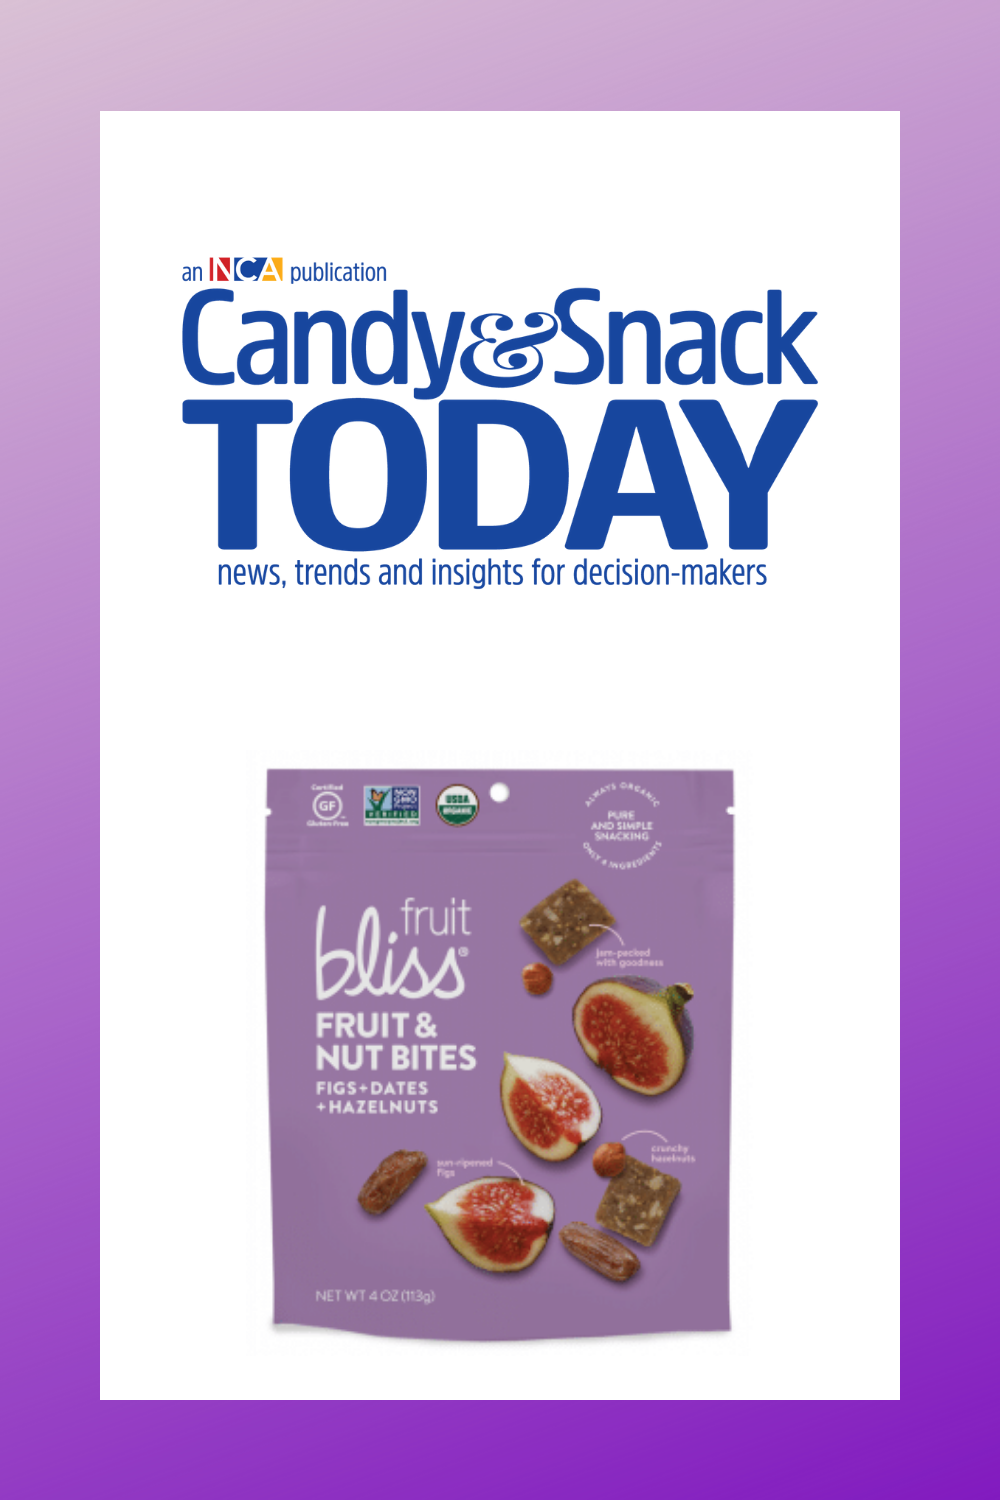 Candy & Snack Today